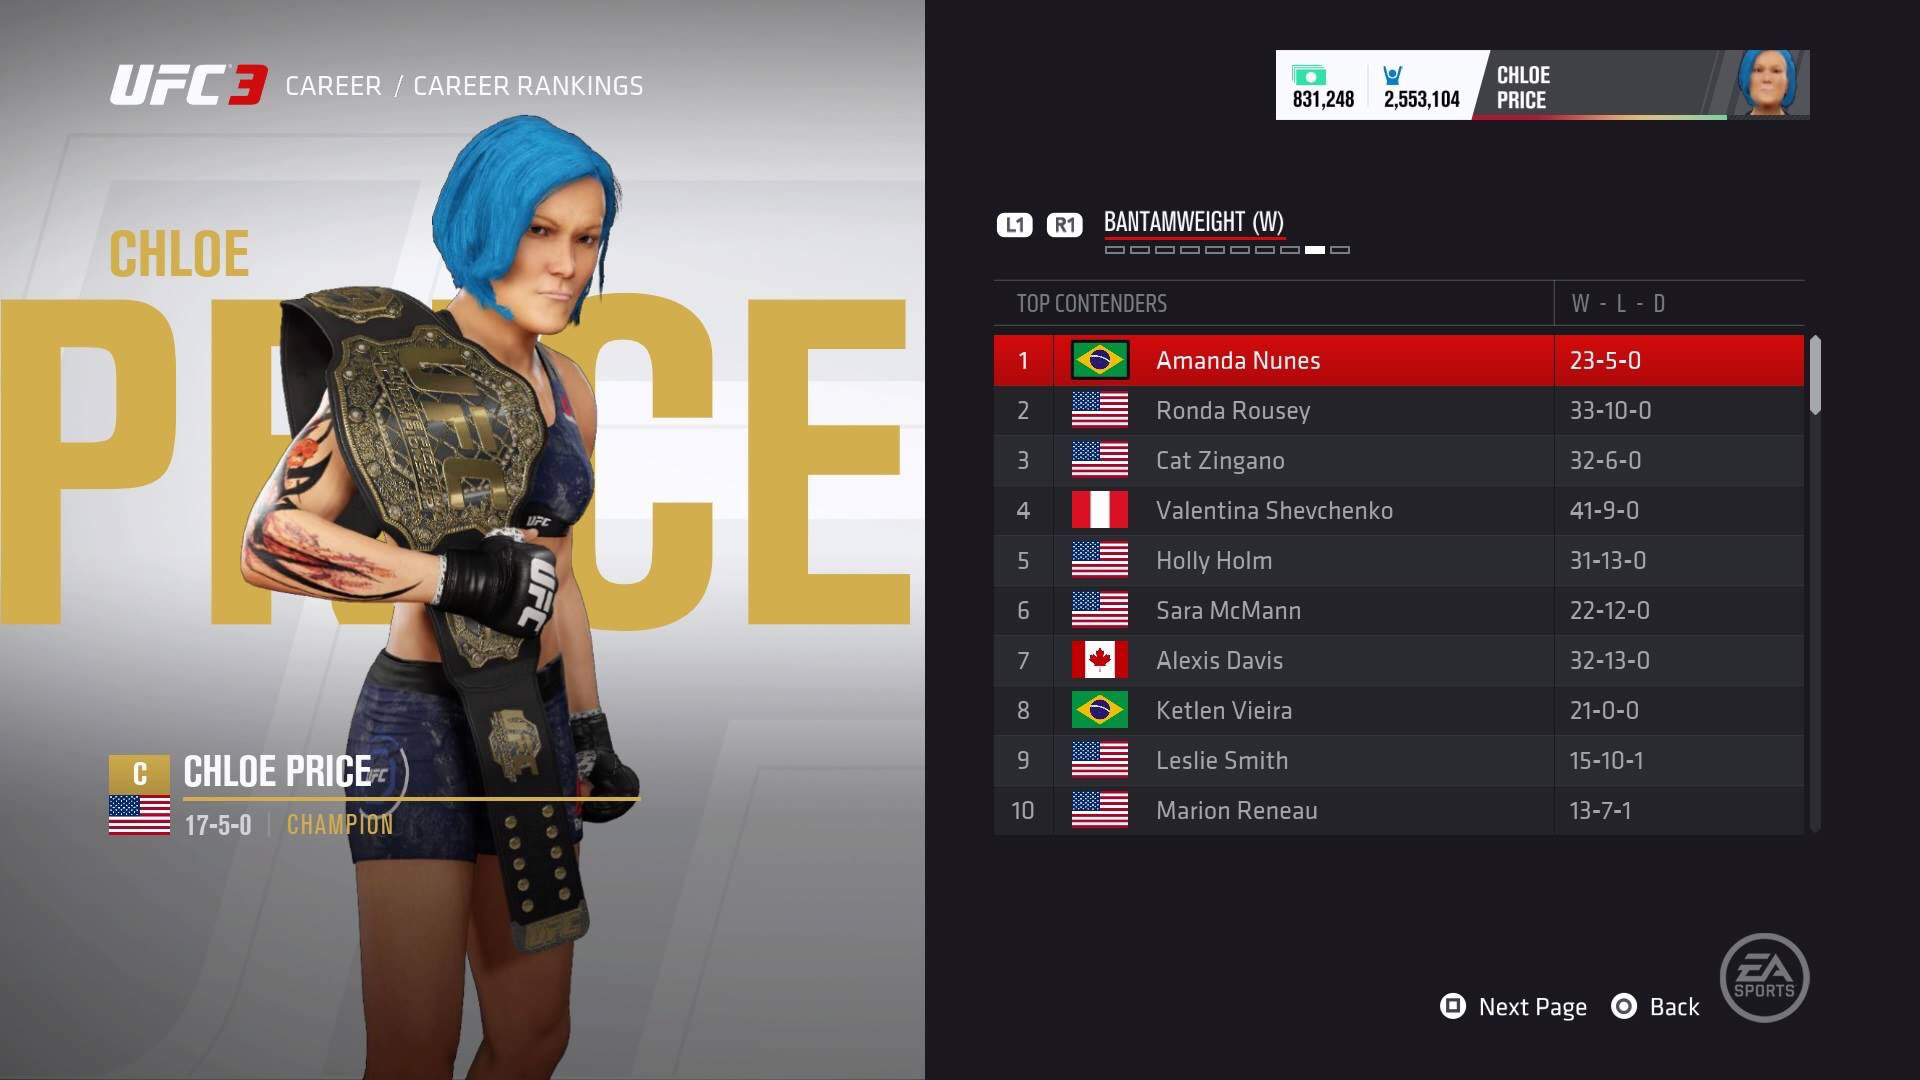 I created Chloe for UFC 3.  The belt she's holding is the UFC Women's Bantamweight Championship.